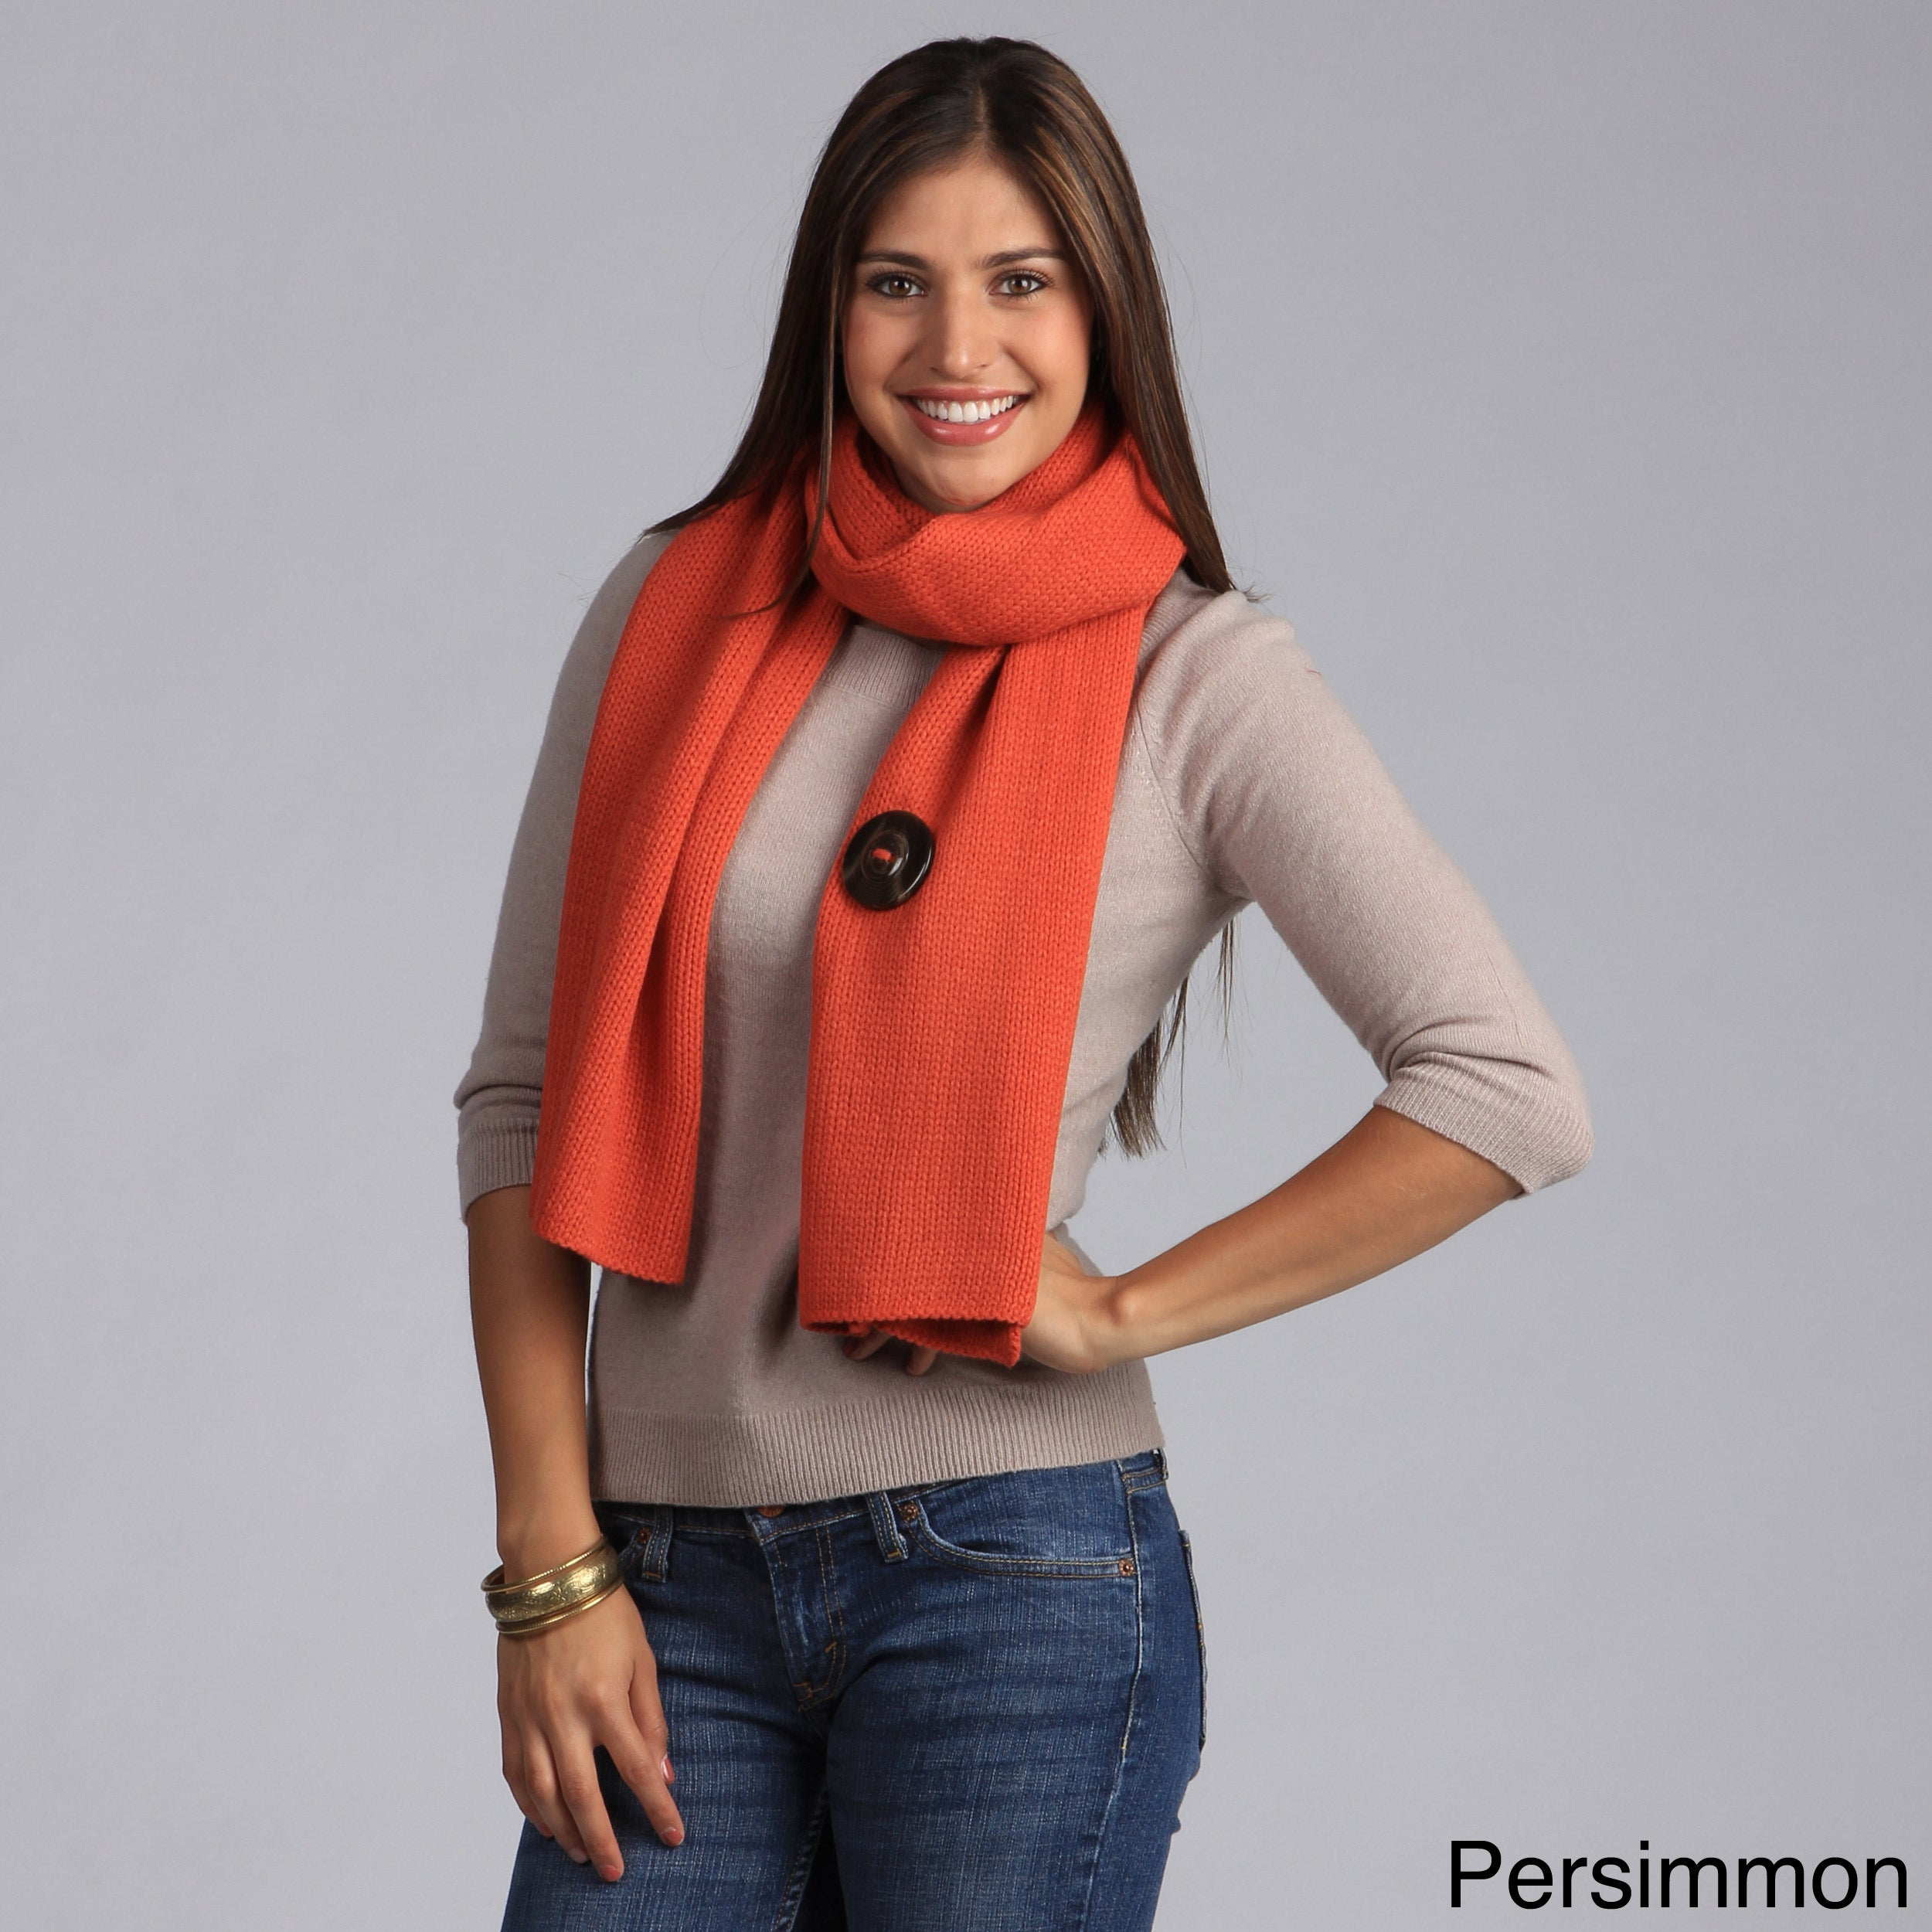 Overstock.com Saro Women's Knitted Acrylic Wrap at Sears.com